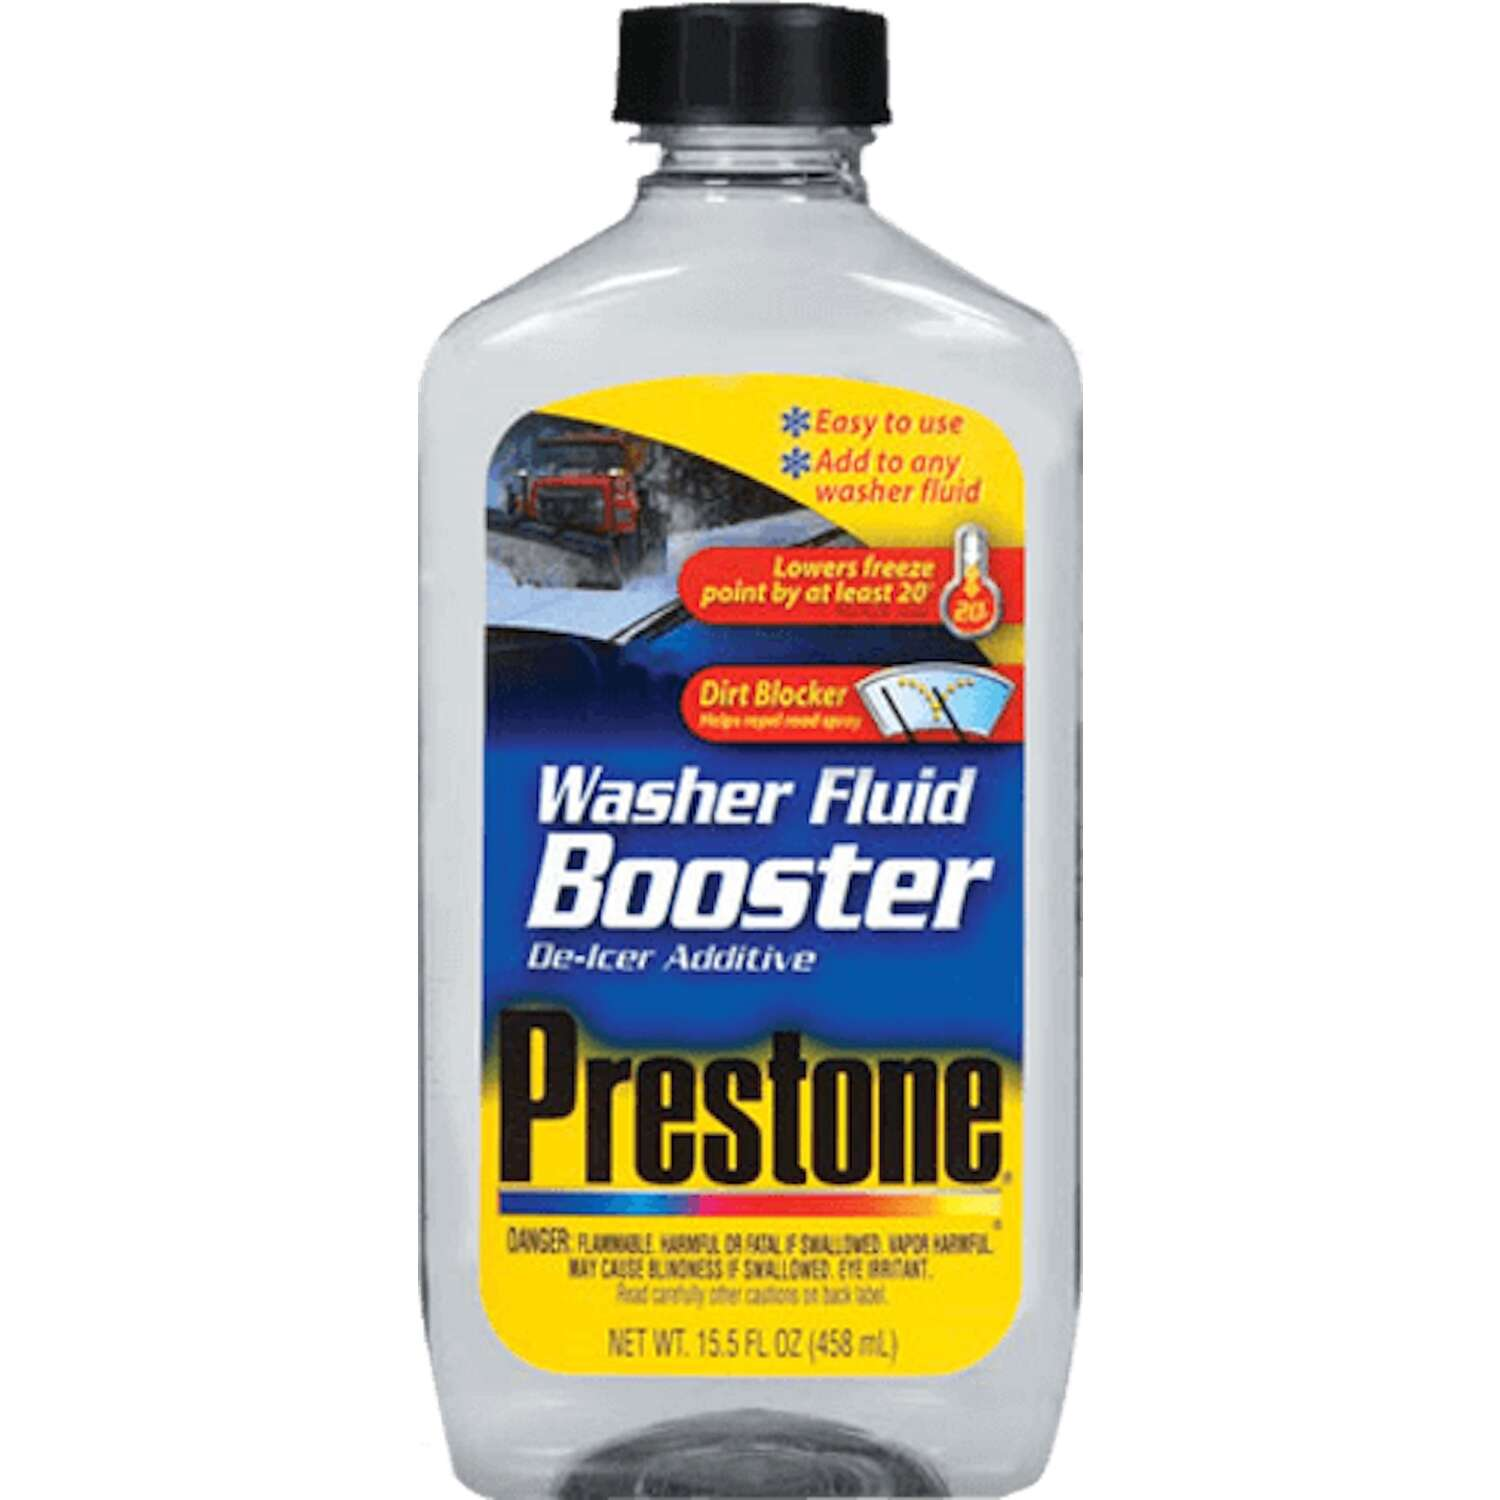 Prestone Washer Fluid Booster 15.5 oz.